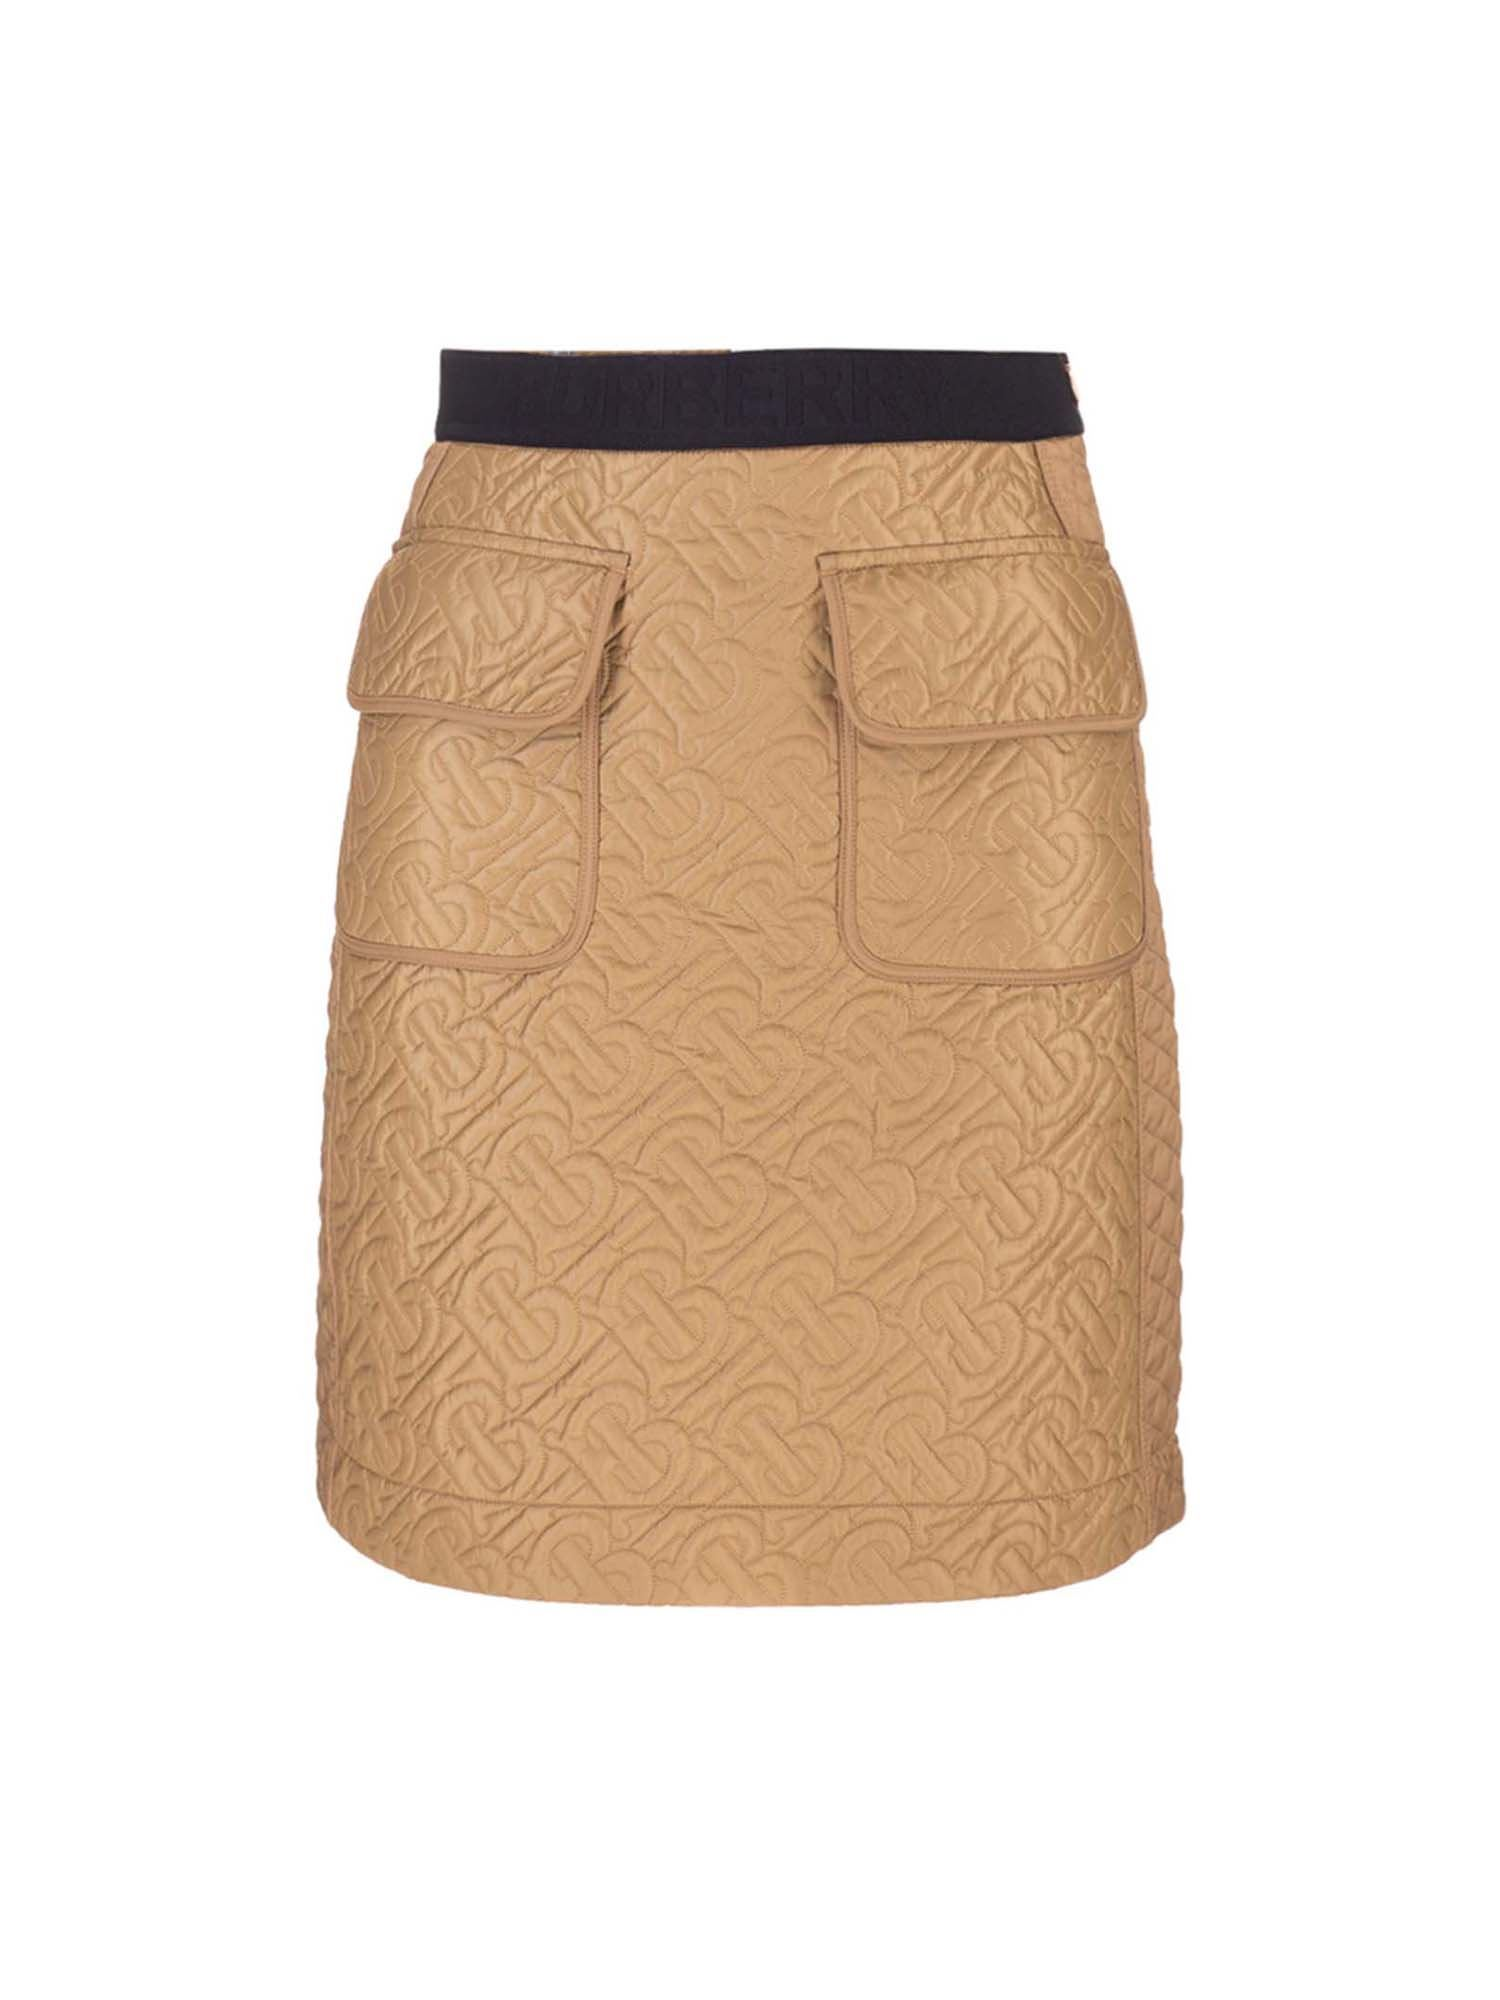 Burberry QUILTED LOGO SKIRT IN BEIGE